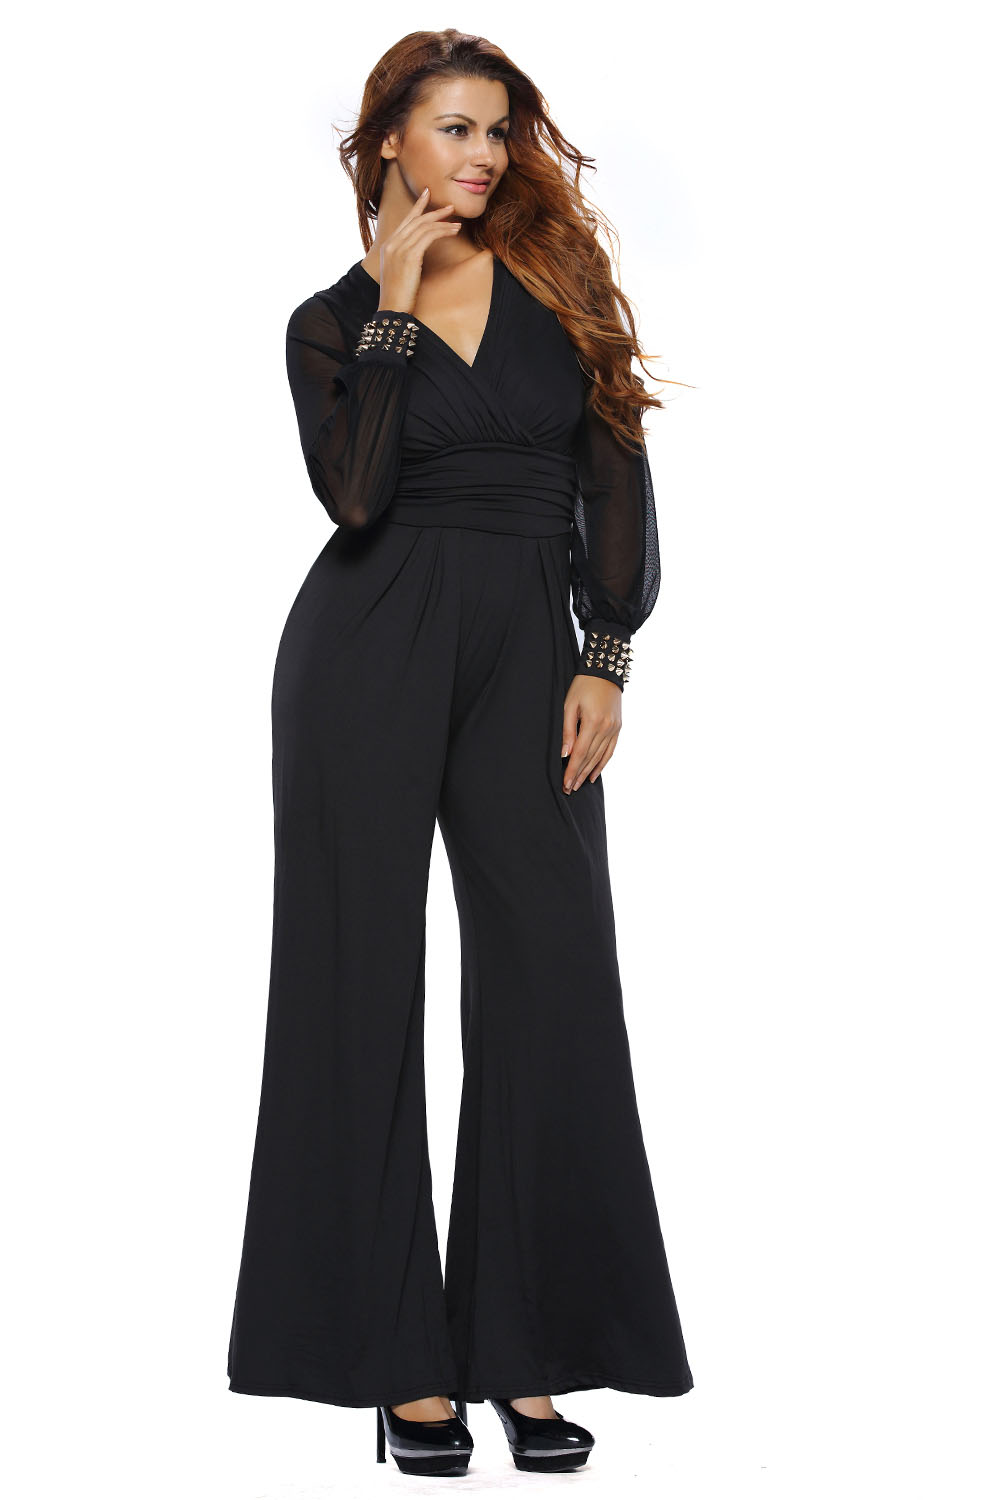 Women Embellished Cuffs Long Mesh Sleeves Jumpsuit Dress ...